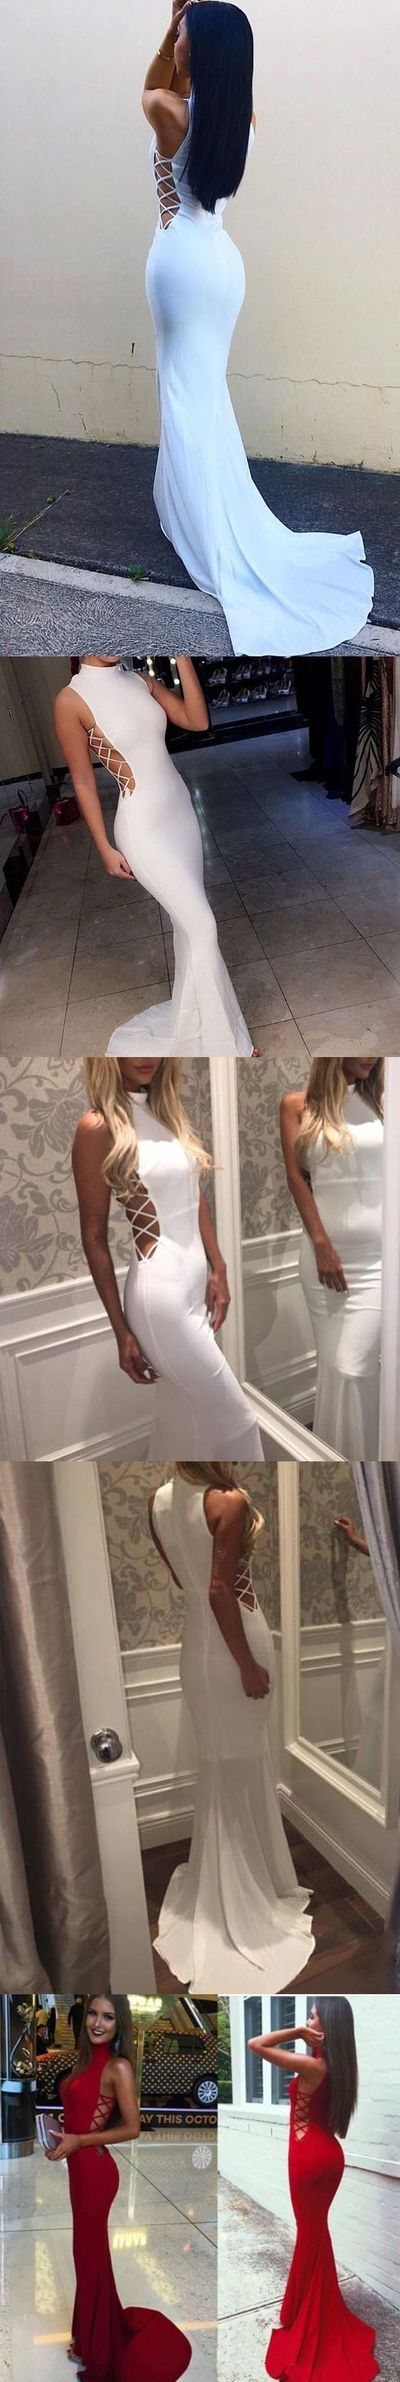 High Neck Prom Dresses,Red Prom Dresses,Mermaid Prom Dress,Sexy Long Prom Dresses,White Prom Dress,MB 366